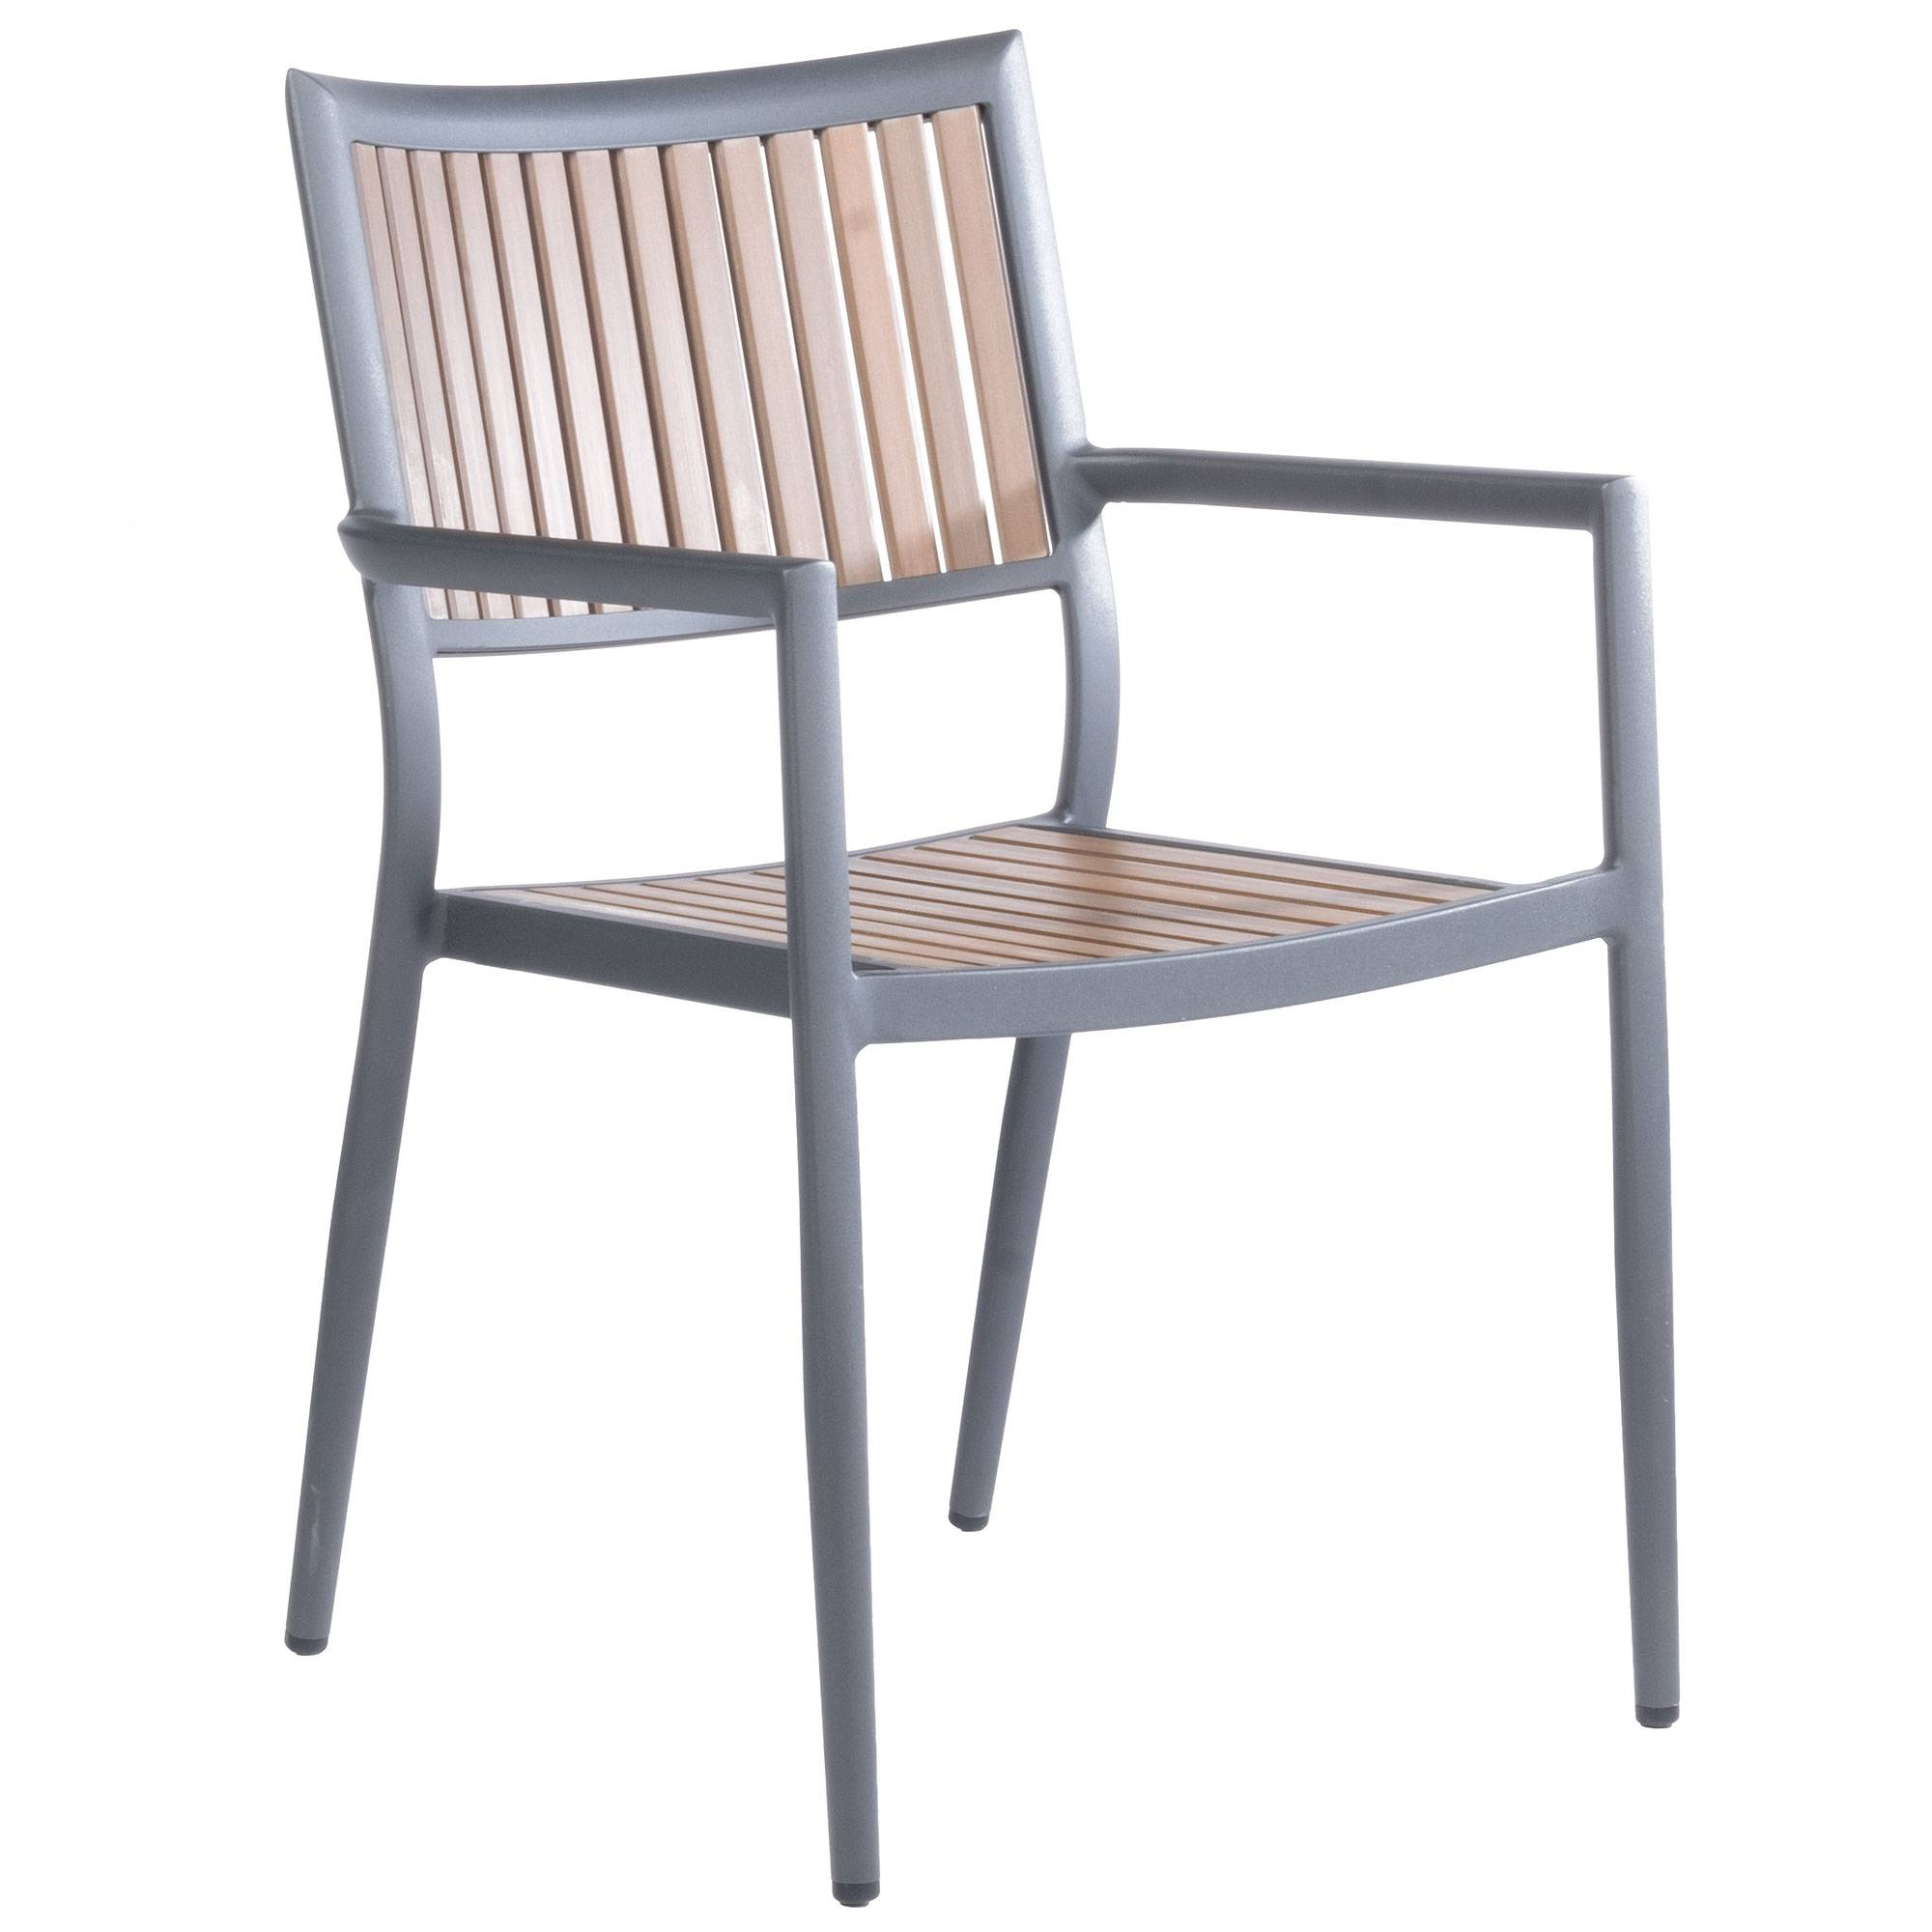 Alfresco Home Penelope Stackable Dining Arm Chair  - Aluminum - Size: One Size